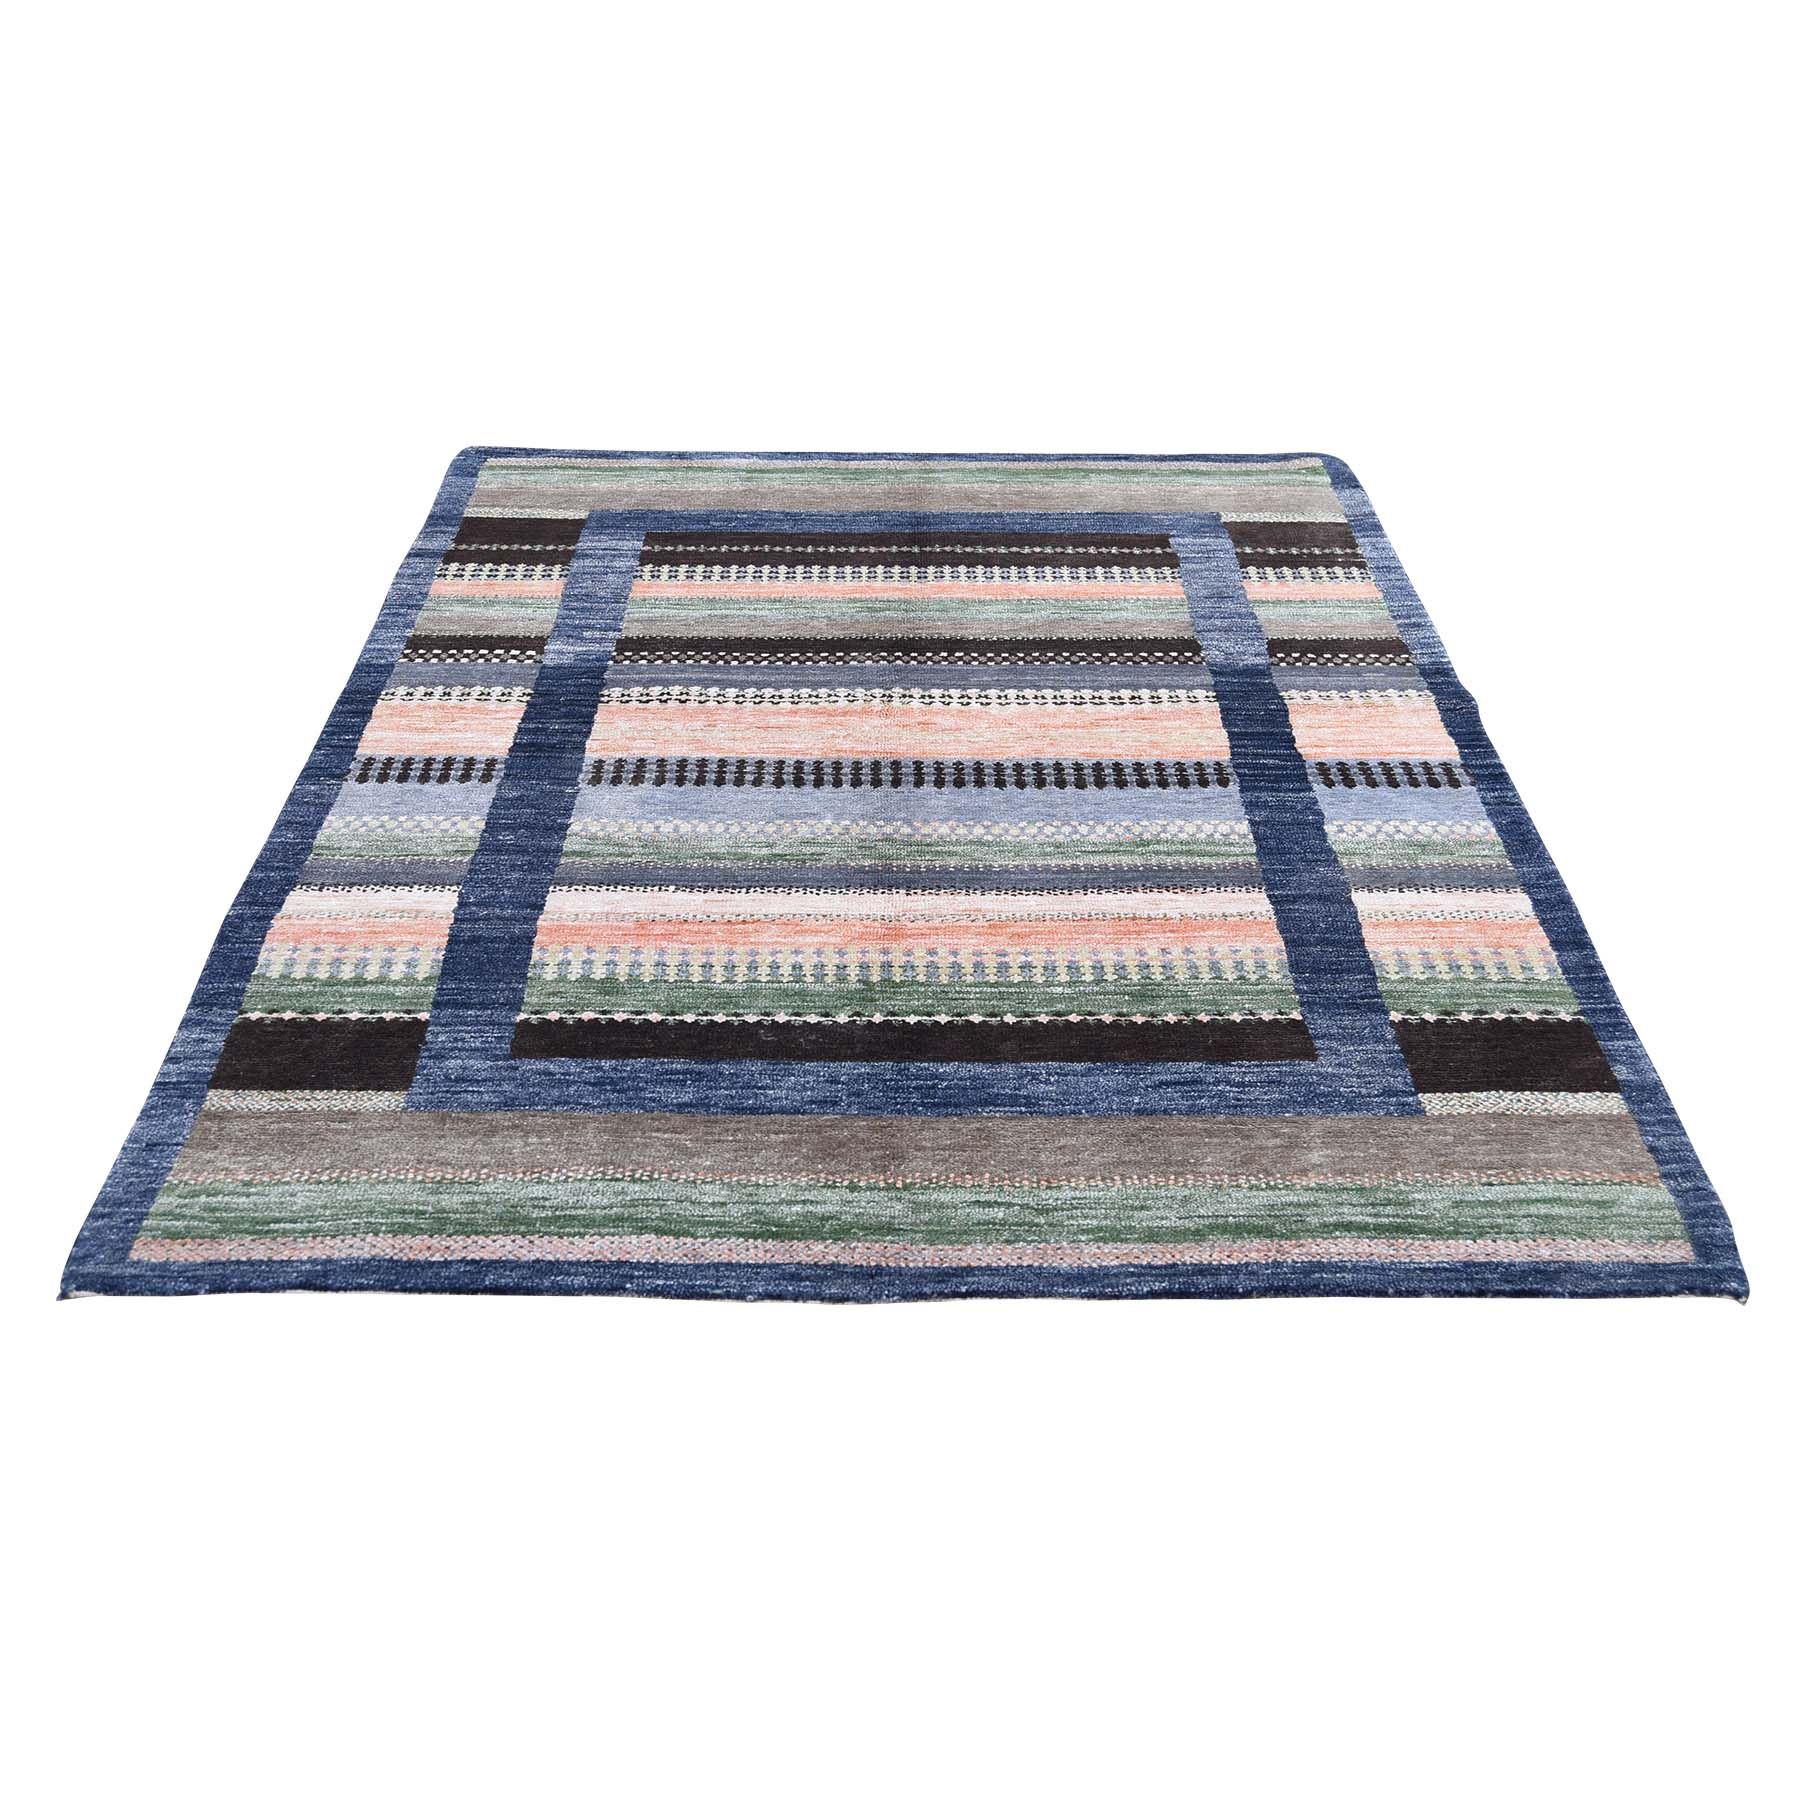 Mid Century Modern Collection Hand Knotted Multicolored Rug No: 0192026